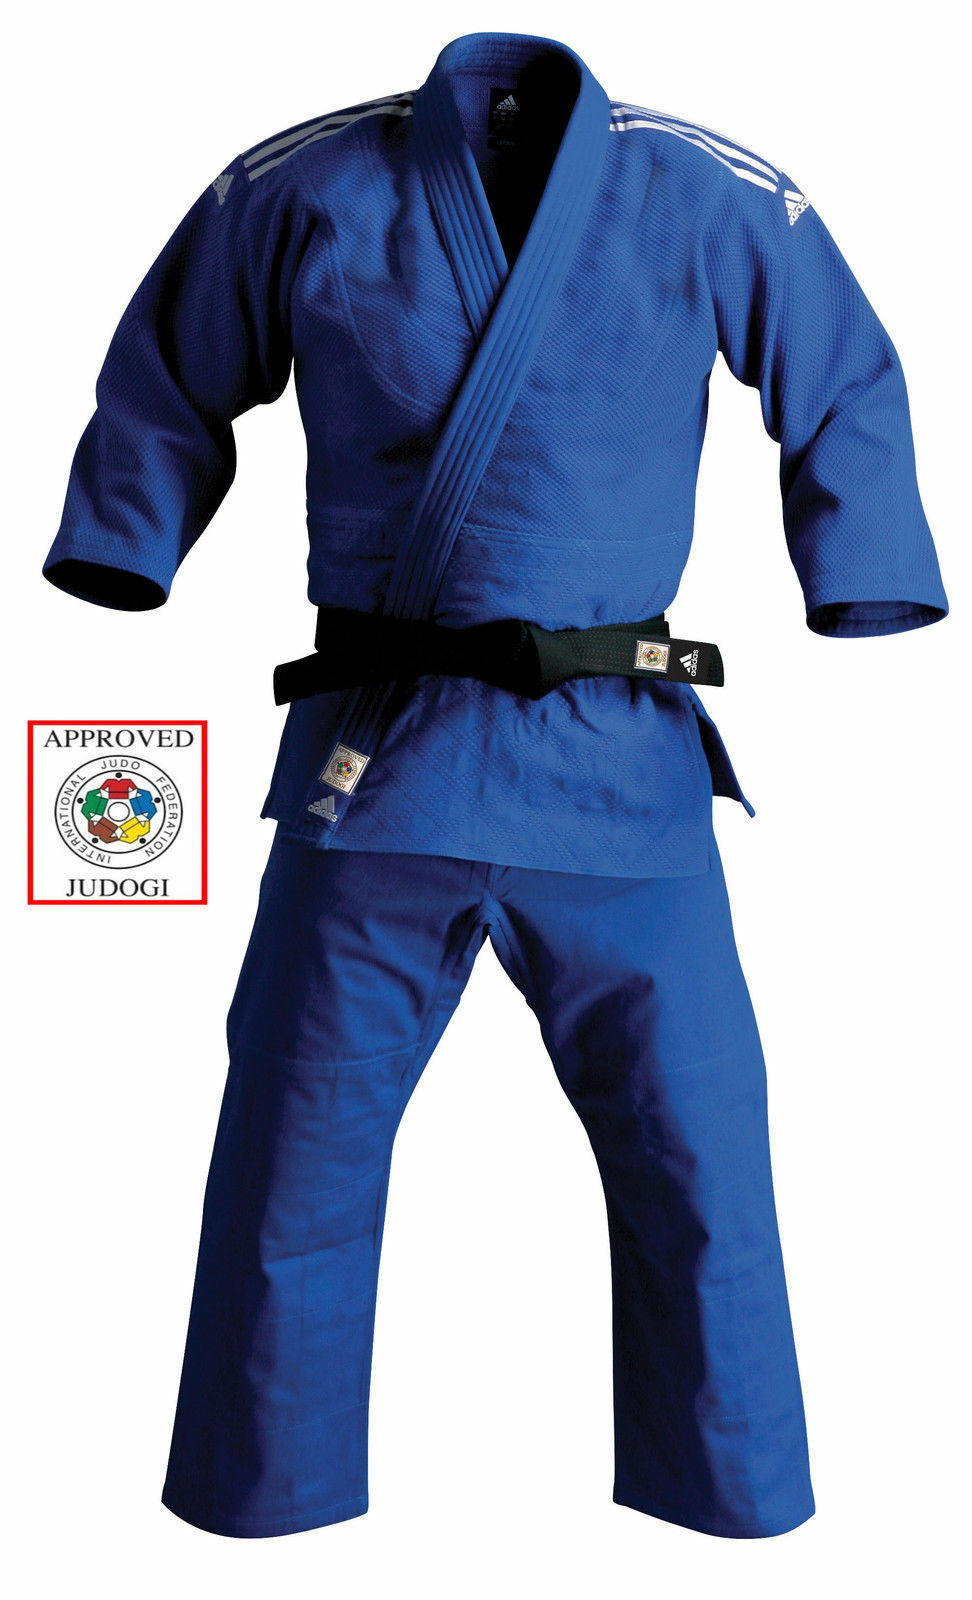 Adidas Judo Suit  Champion II Gi 750g Adult Uniform blueeeeeeeee IJF Approved Heavyweight  fast shipping